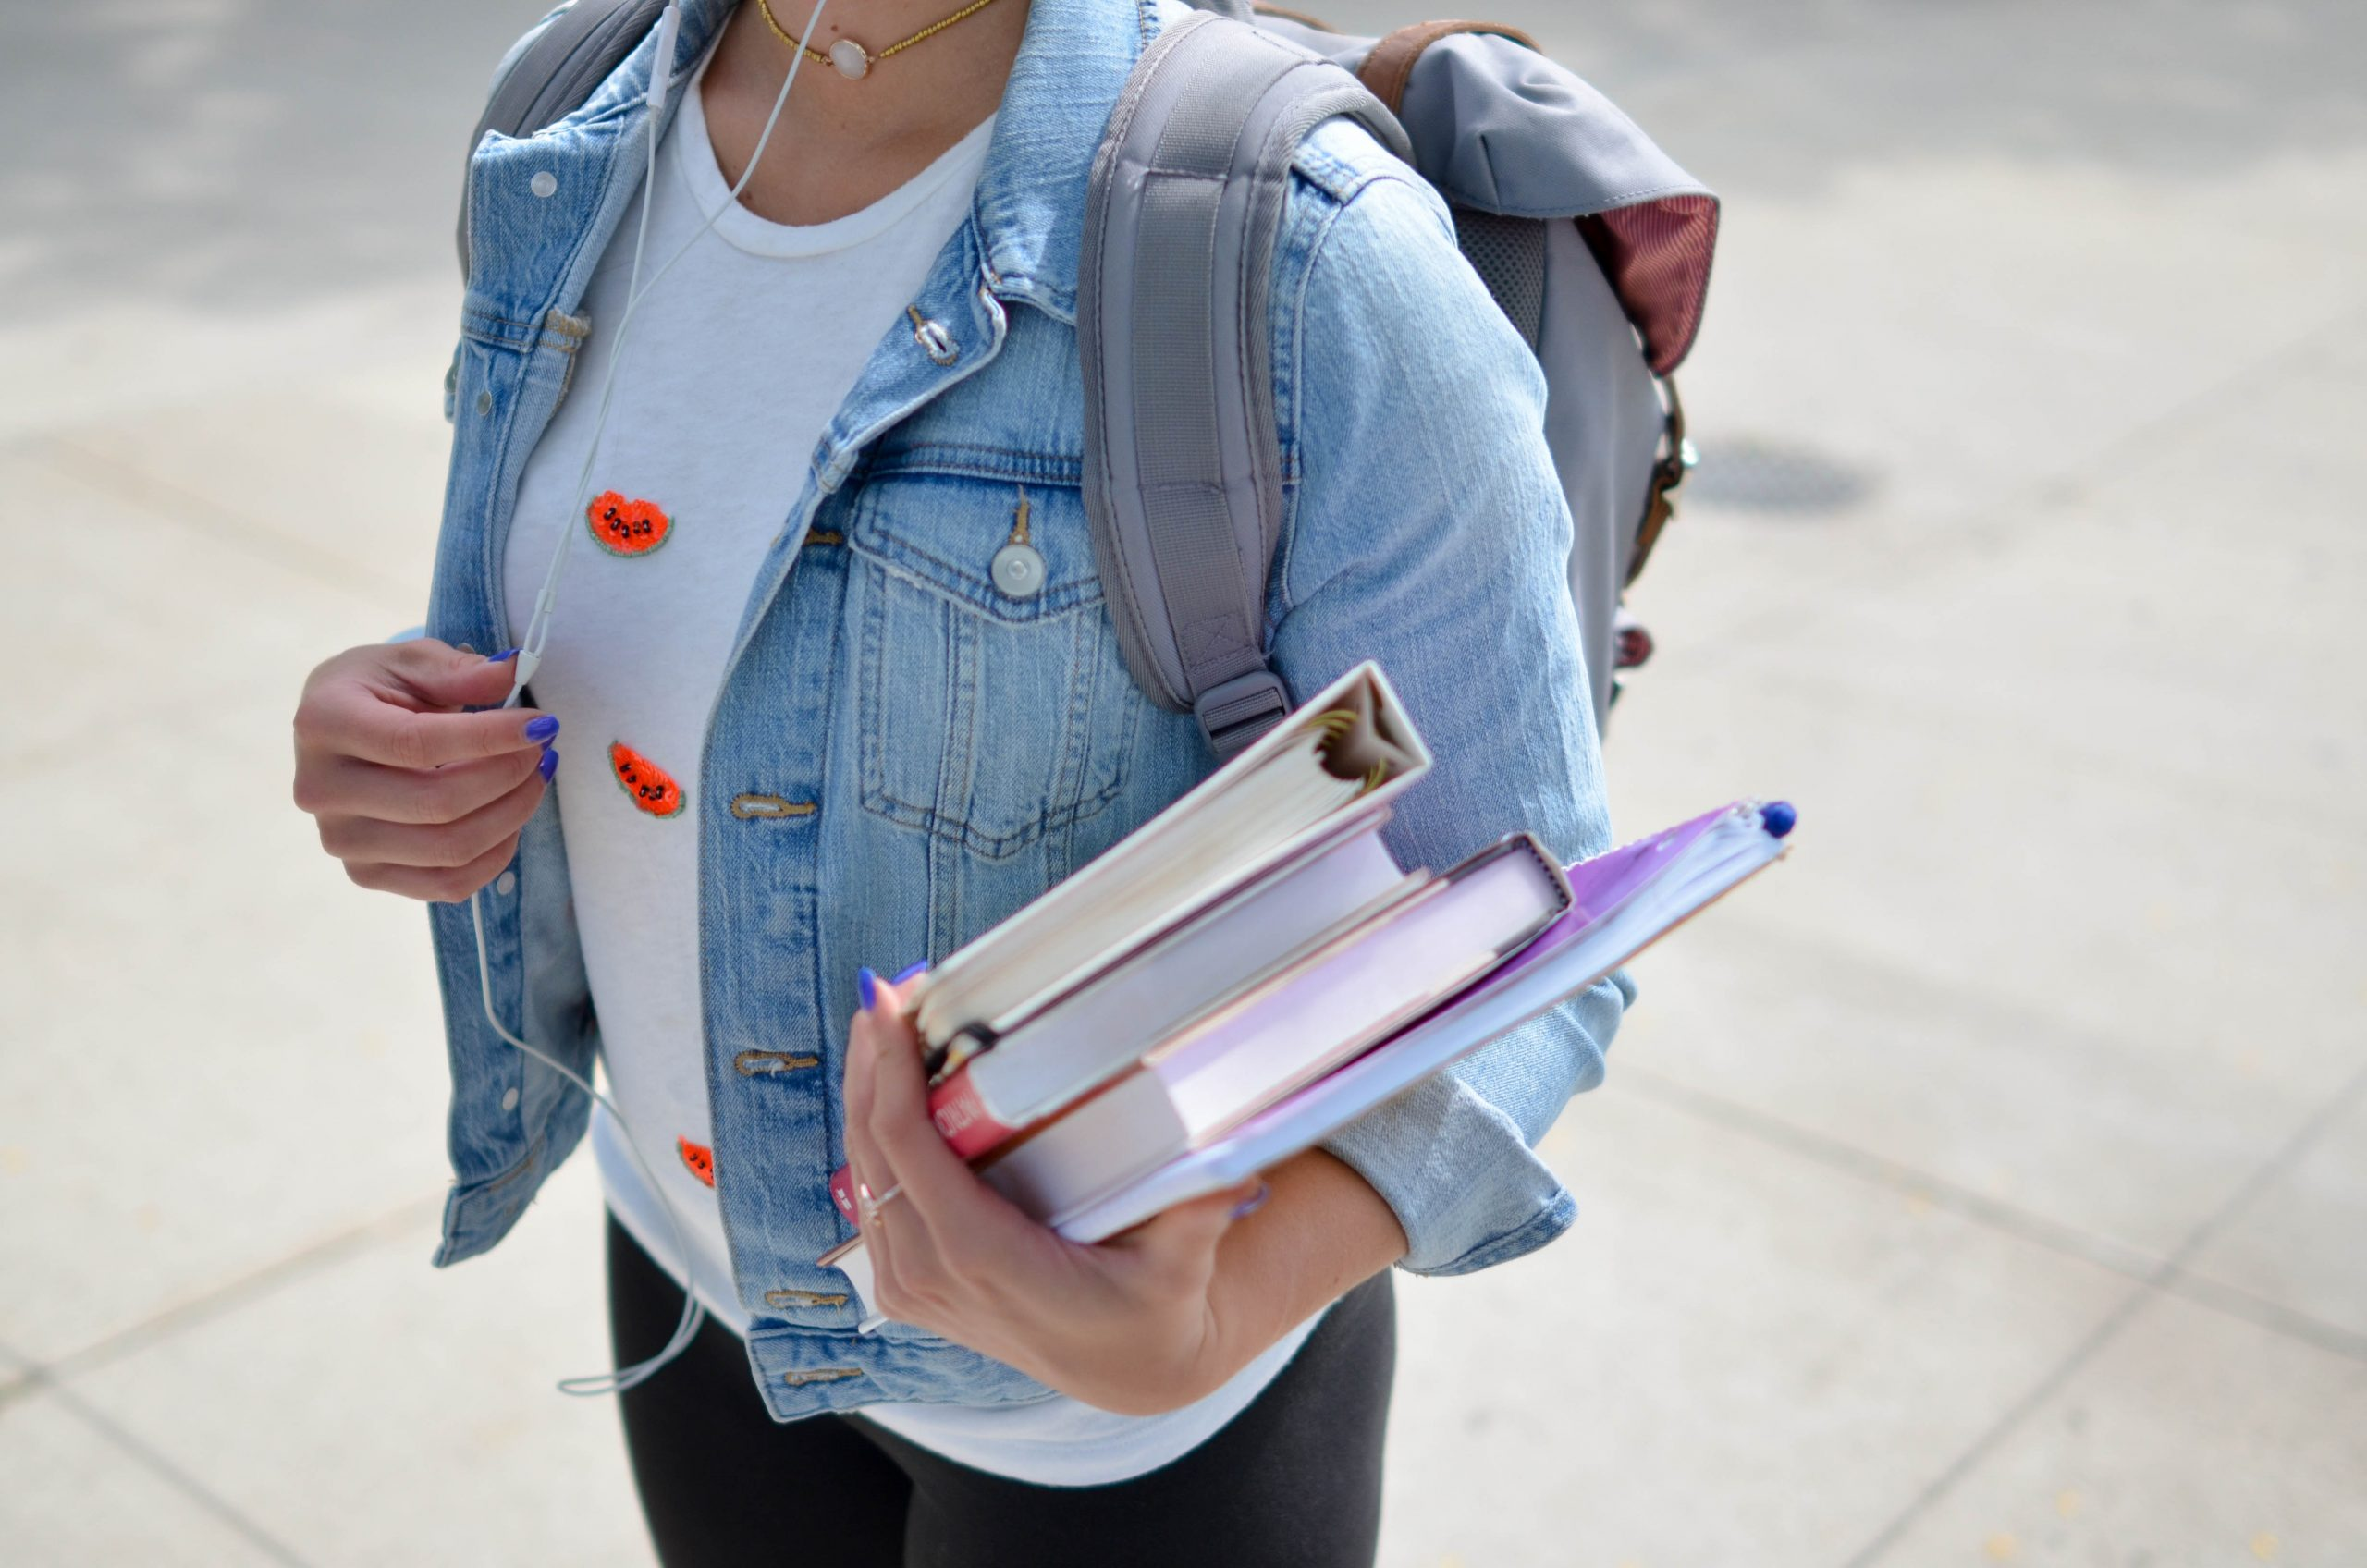 Image shows a female student (face not in shot), wearing a denim jacket, white t-shirt and grey rucksack, carry 4 books and wearing headphones.